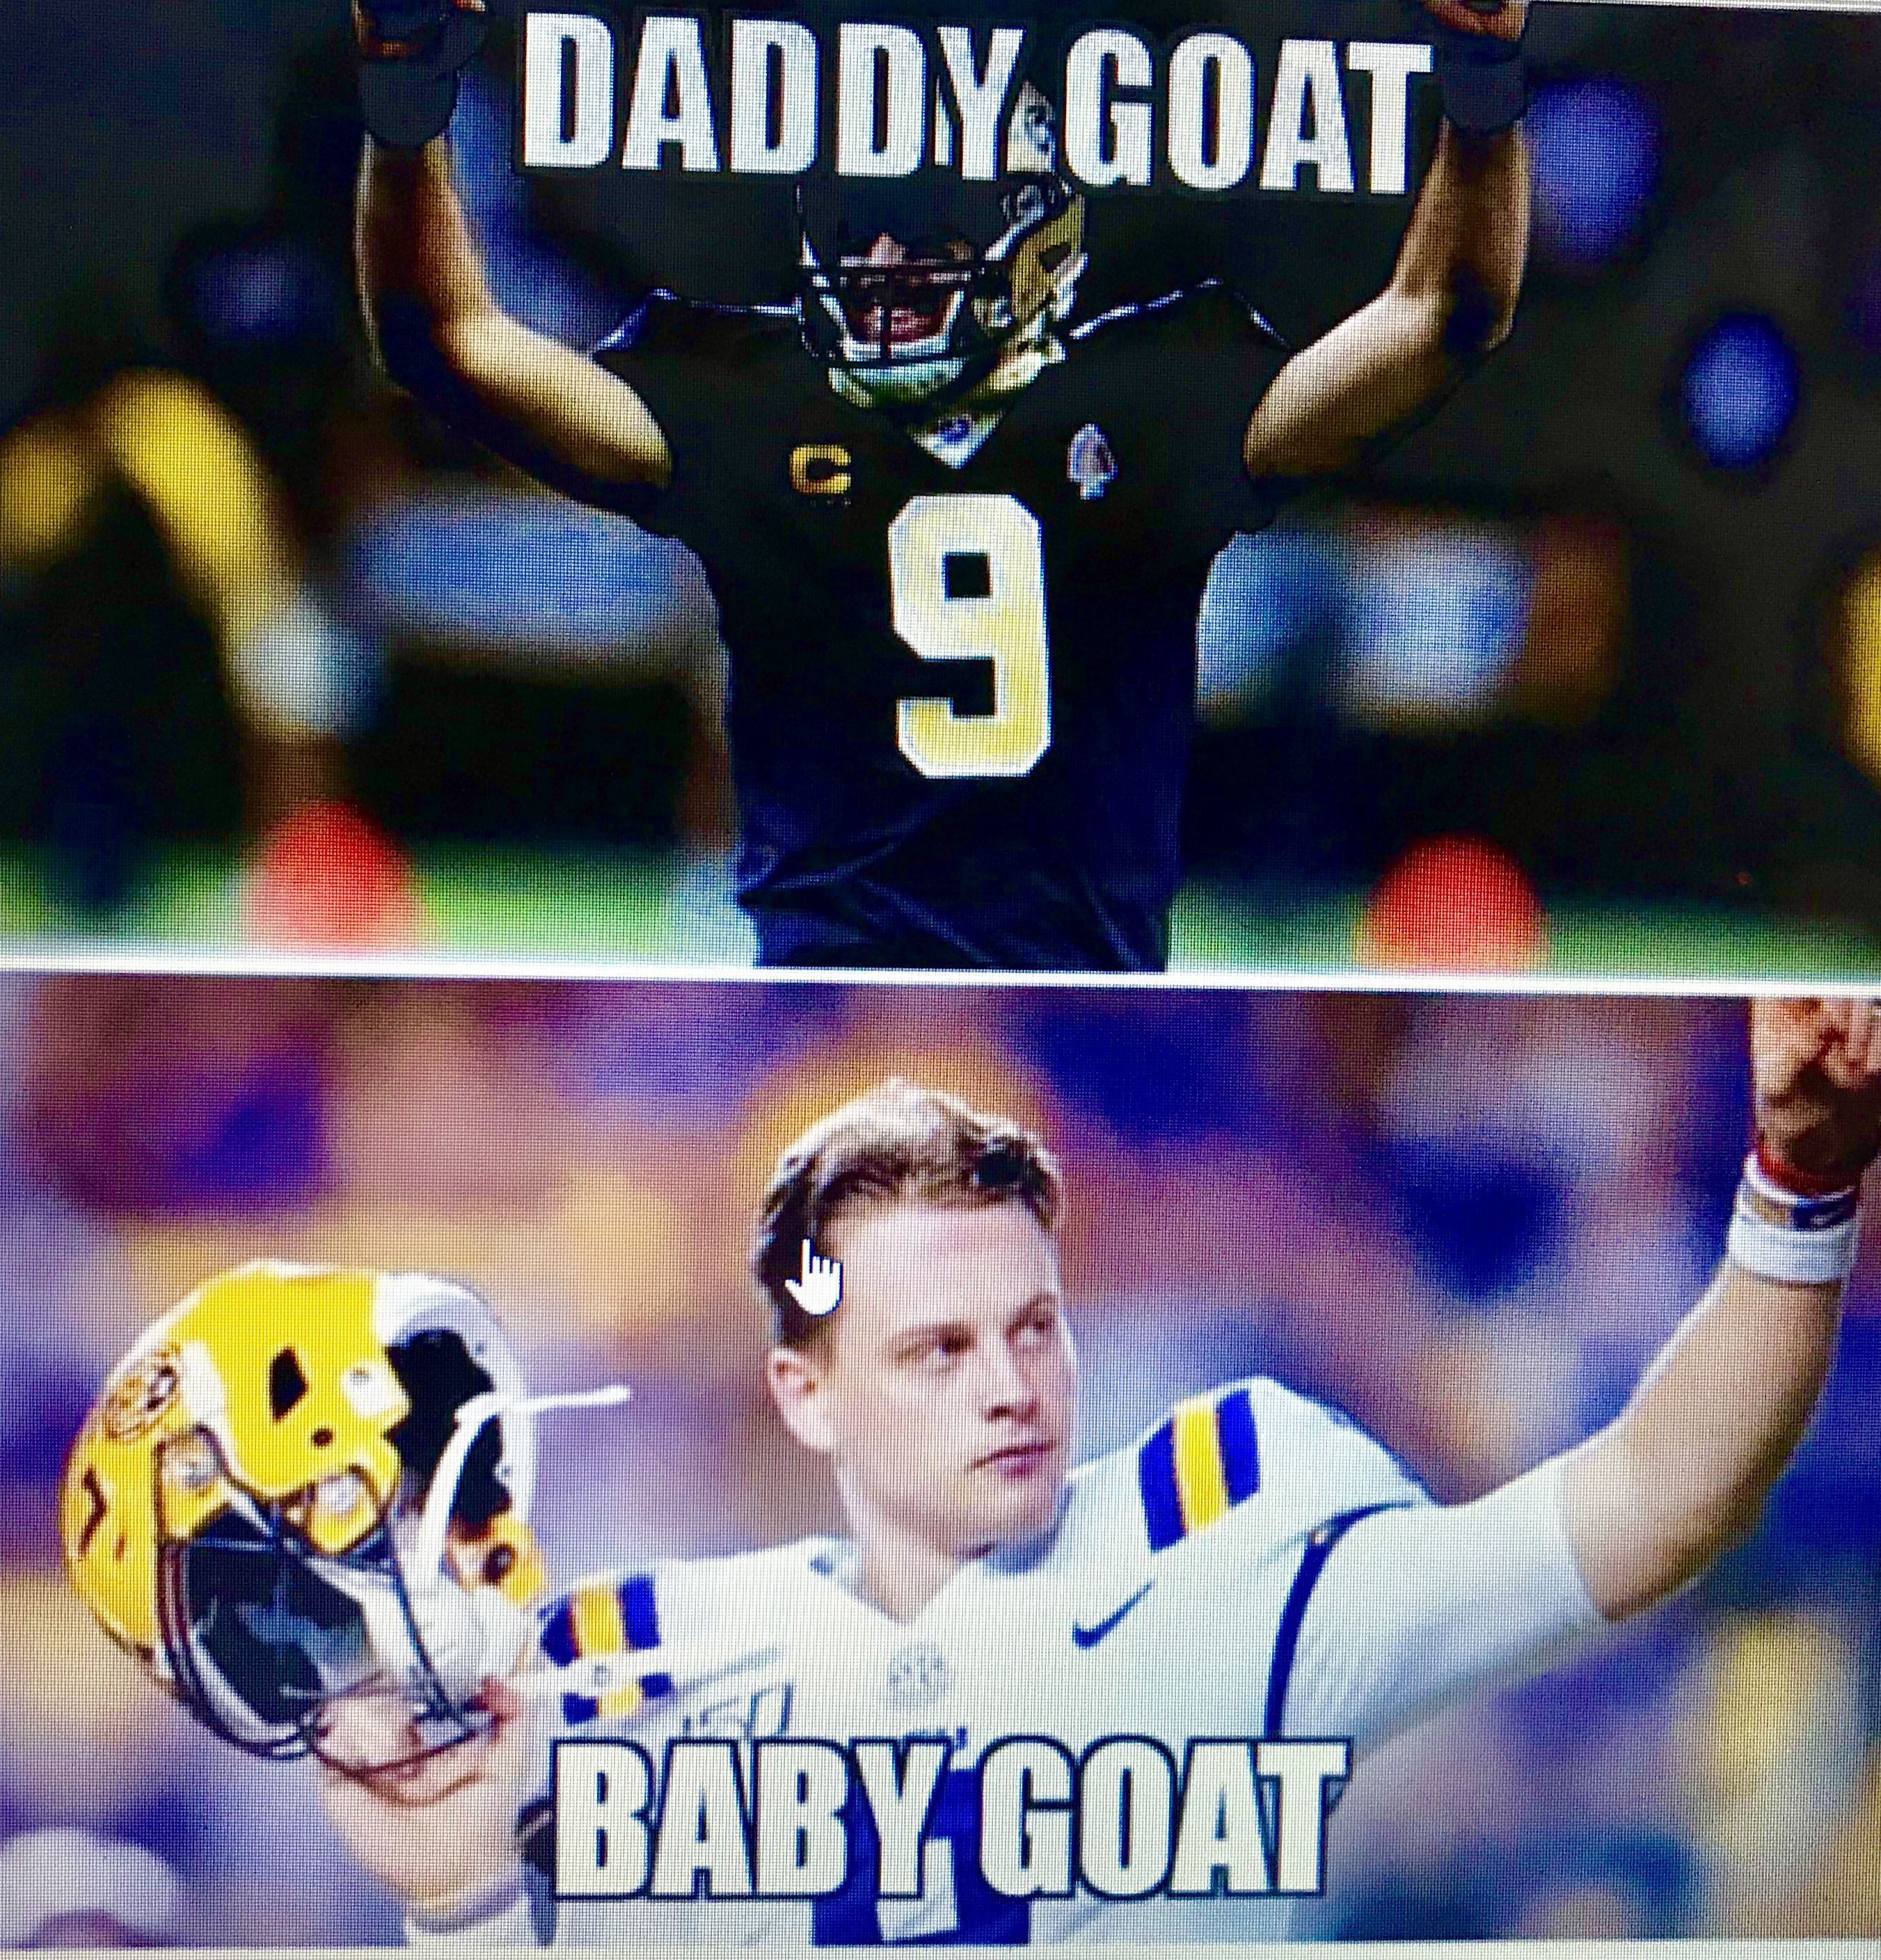 Pin By Linda Welden On Lsu In 2020 Lsu Football Nfl Memes Funny New Orleans Saints Football